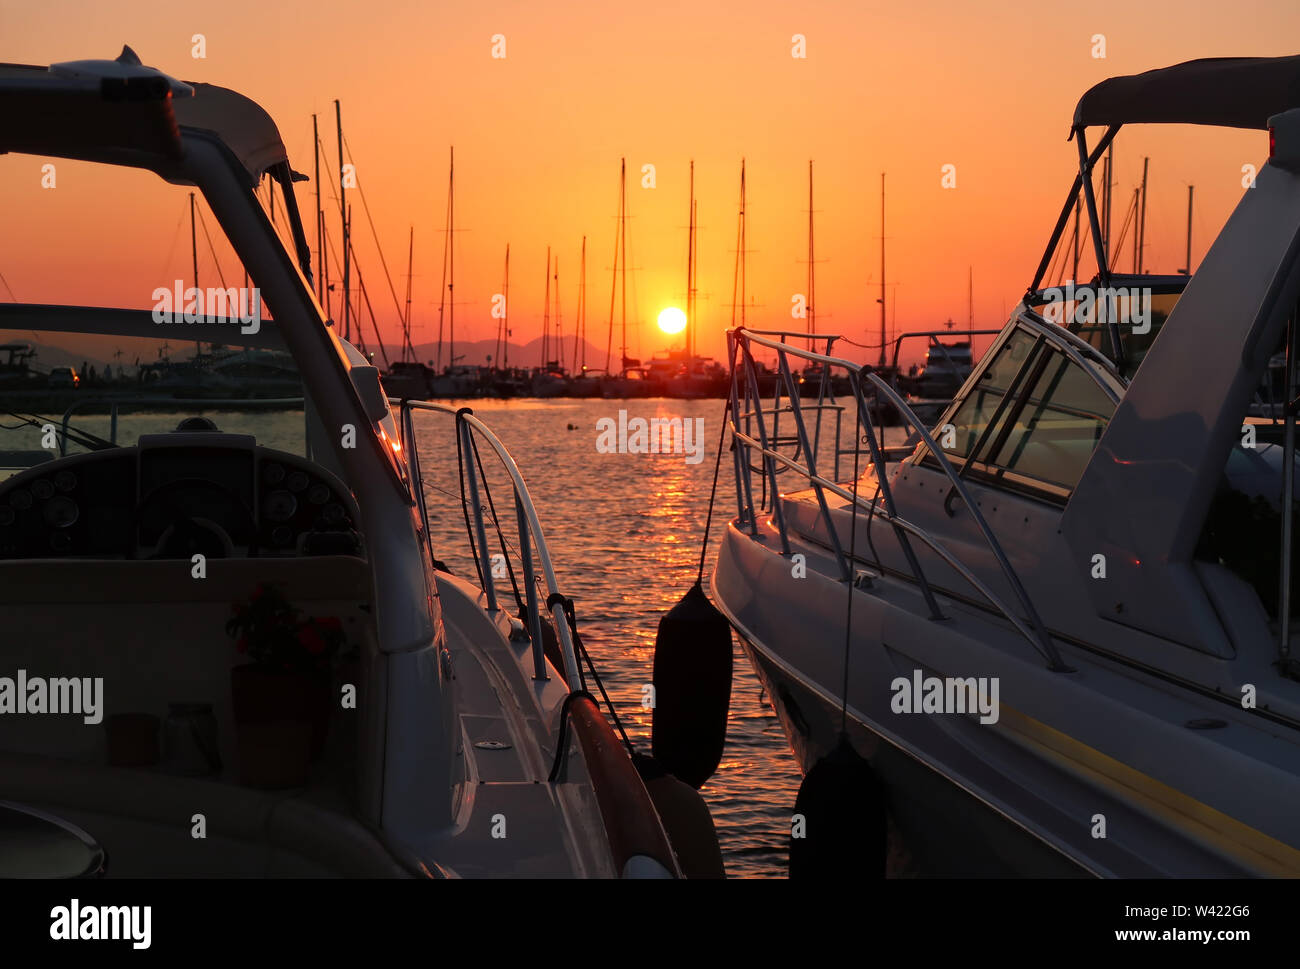 Sunset in the port - Stock Image